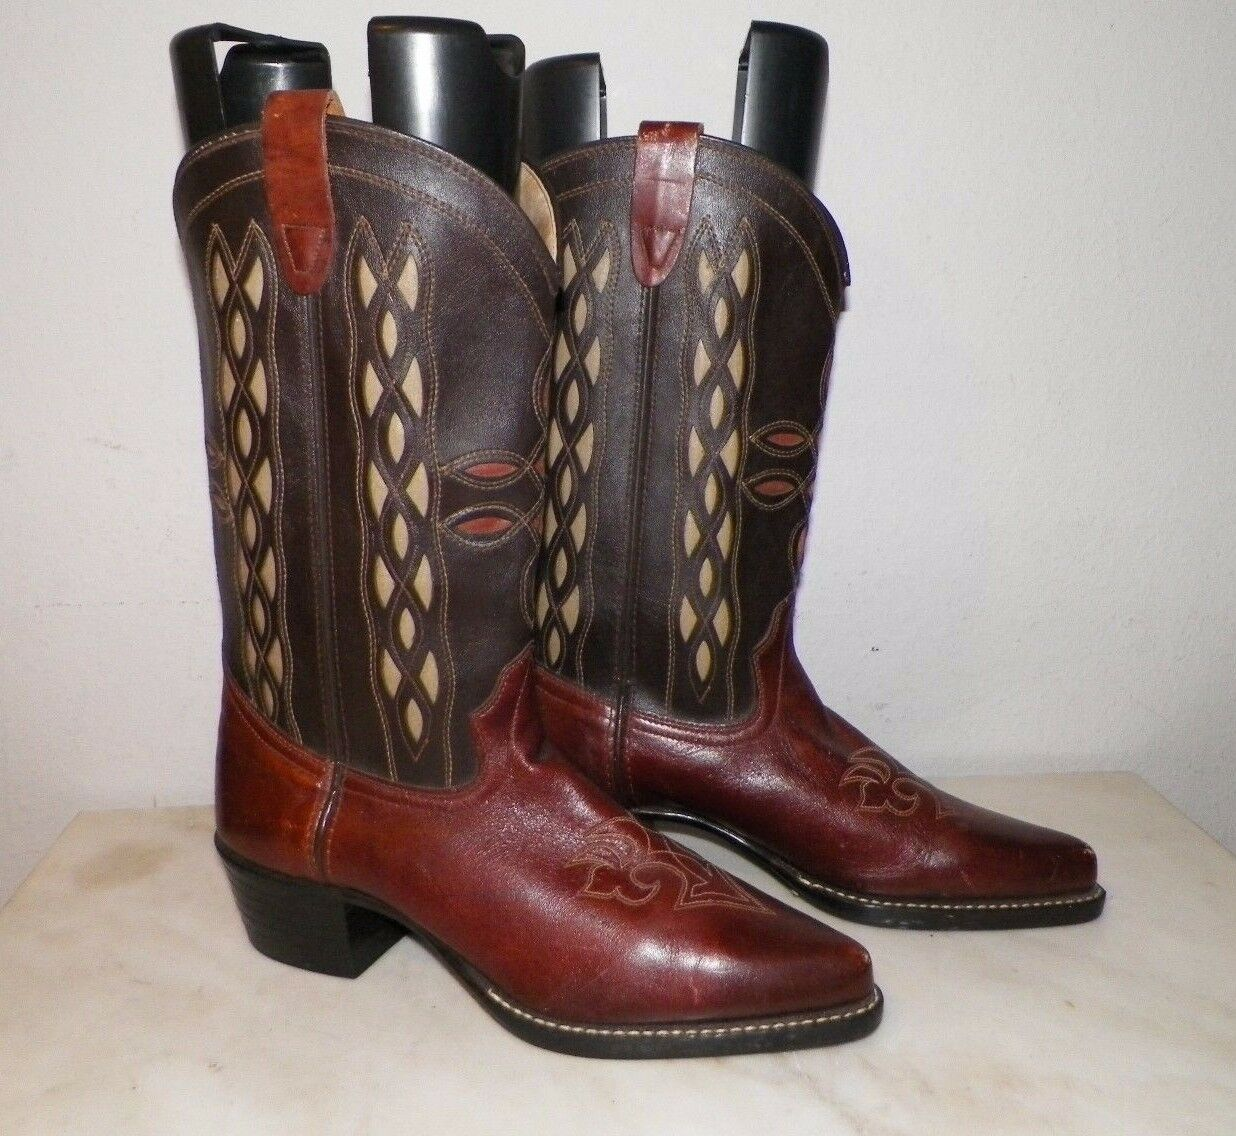 uomo uomo uomo BRONCO FANCY WESTERN COWBOY stivali Marrone SZ 9 D USA MADE cff5c3